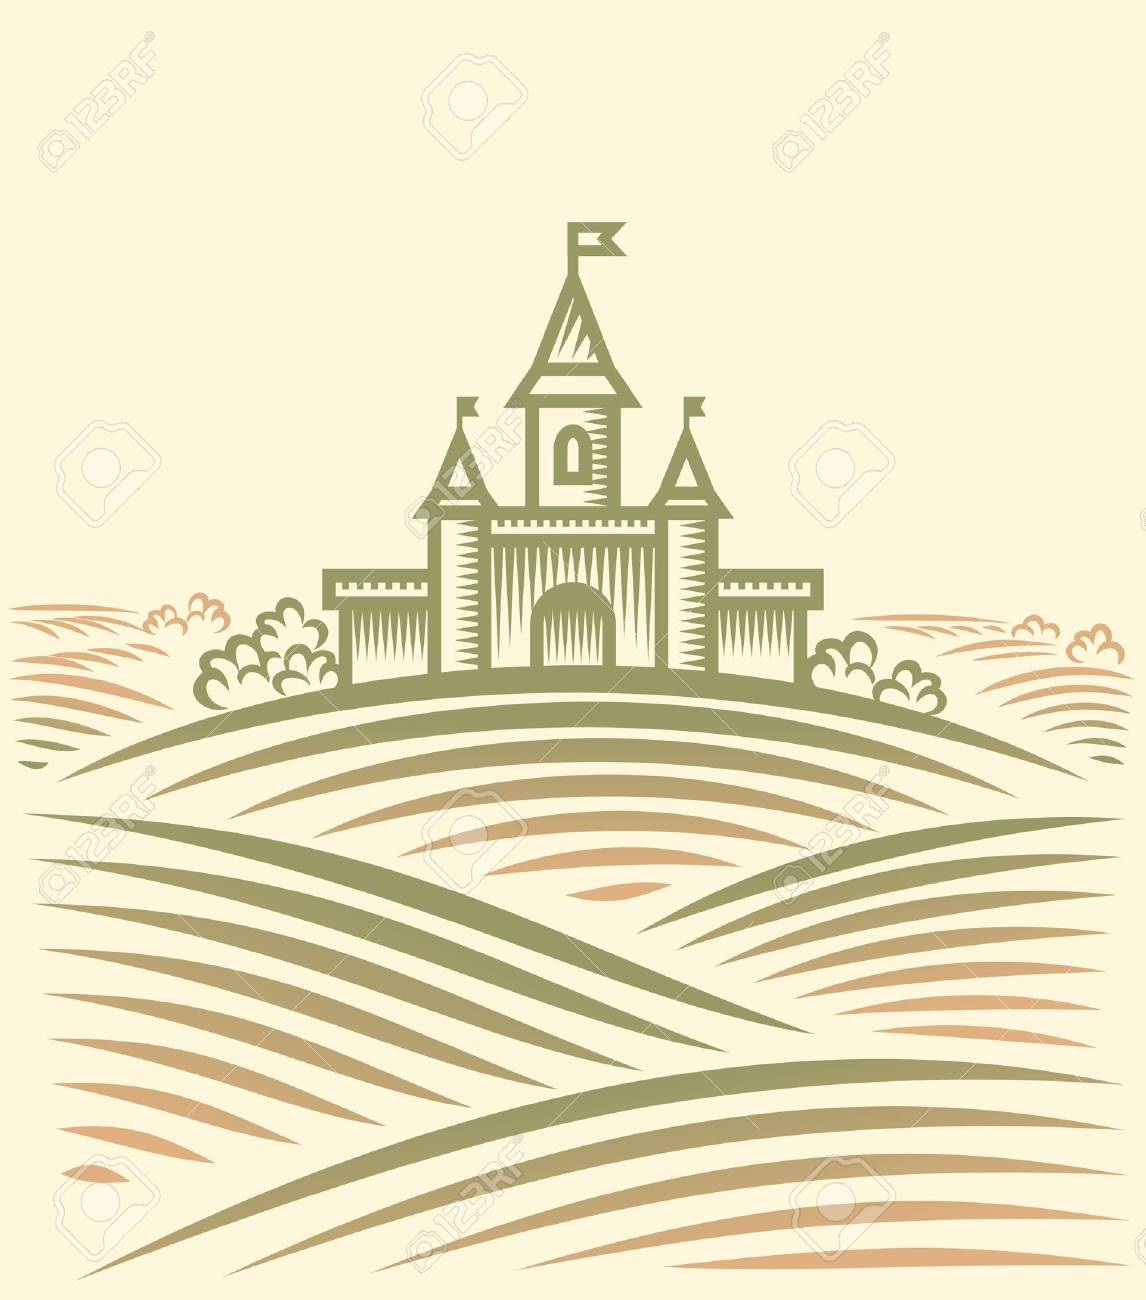 Rural landscape with hill and Castle Stock Vector - 17469499